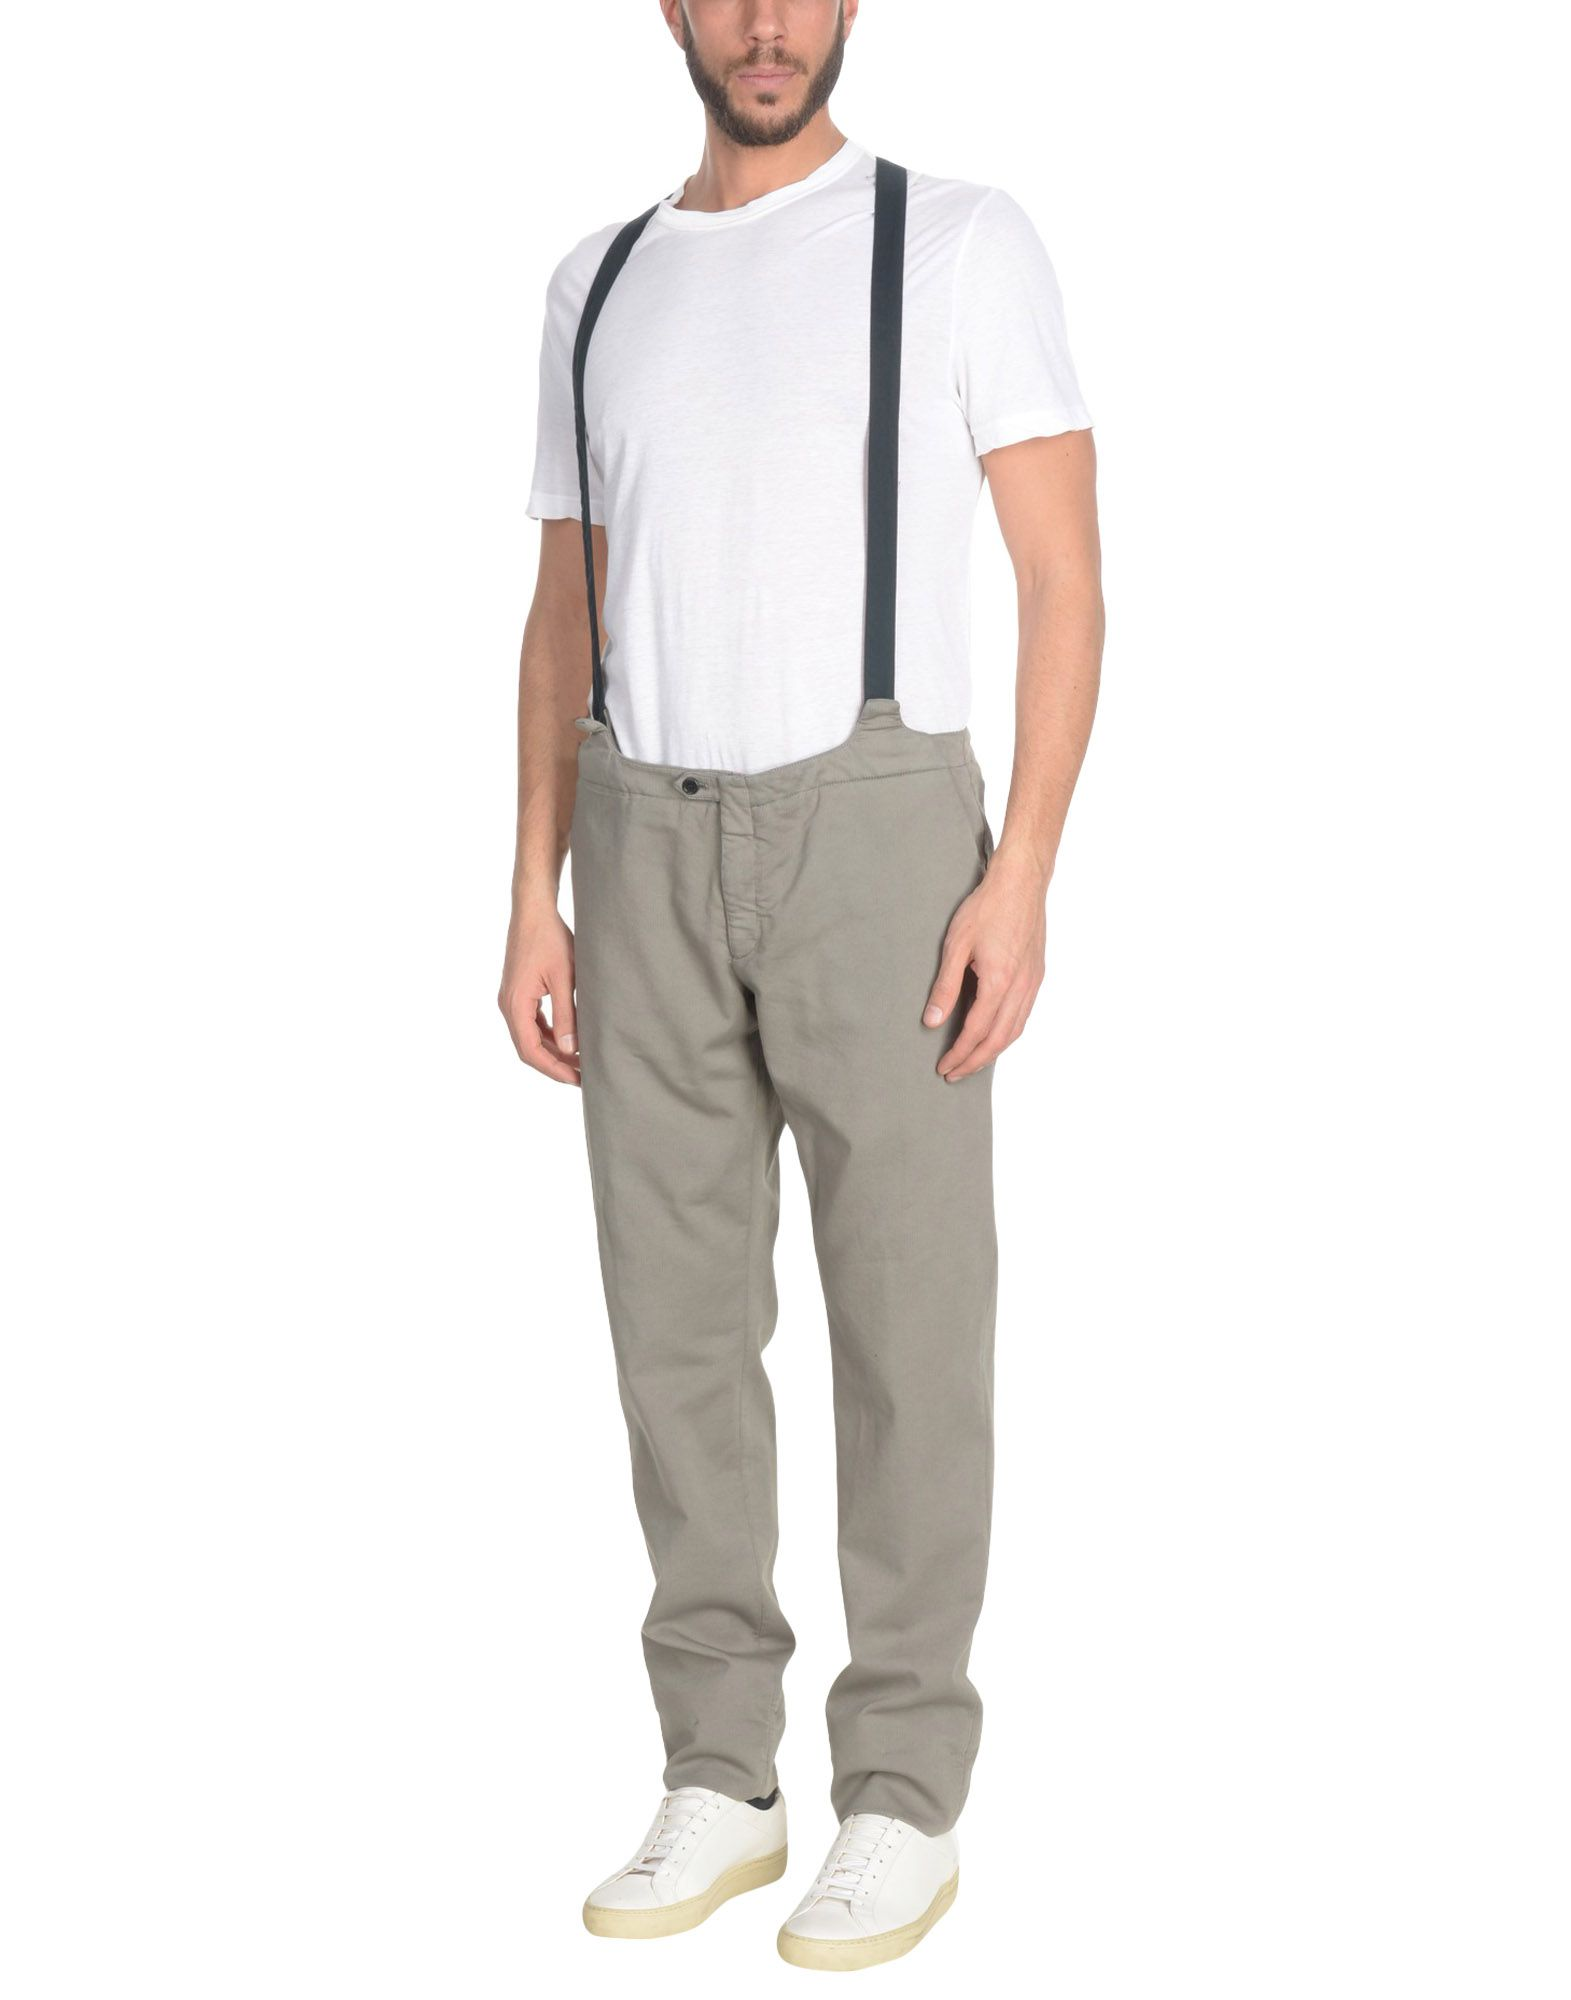 10A SUSPENDER TROUSERS COMPANY Повседневные брюки trophy trousers повседневные брюки